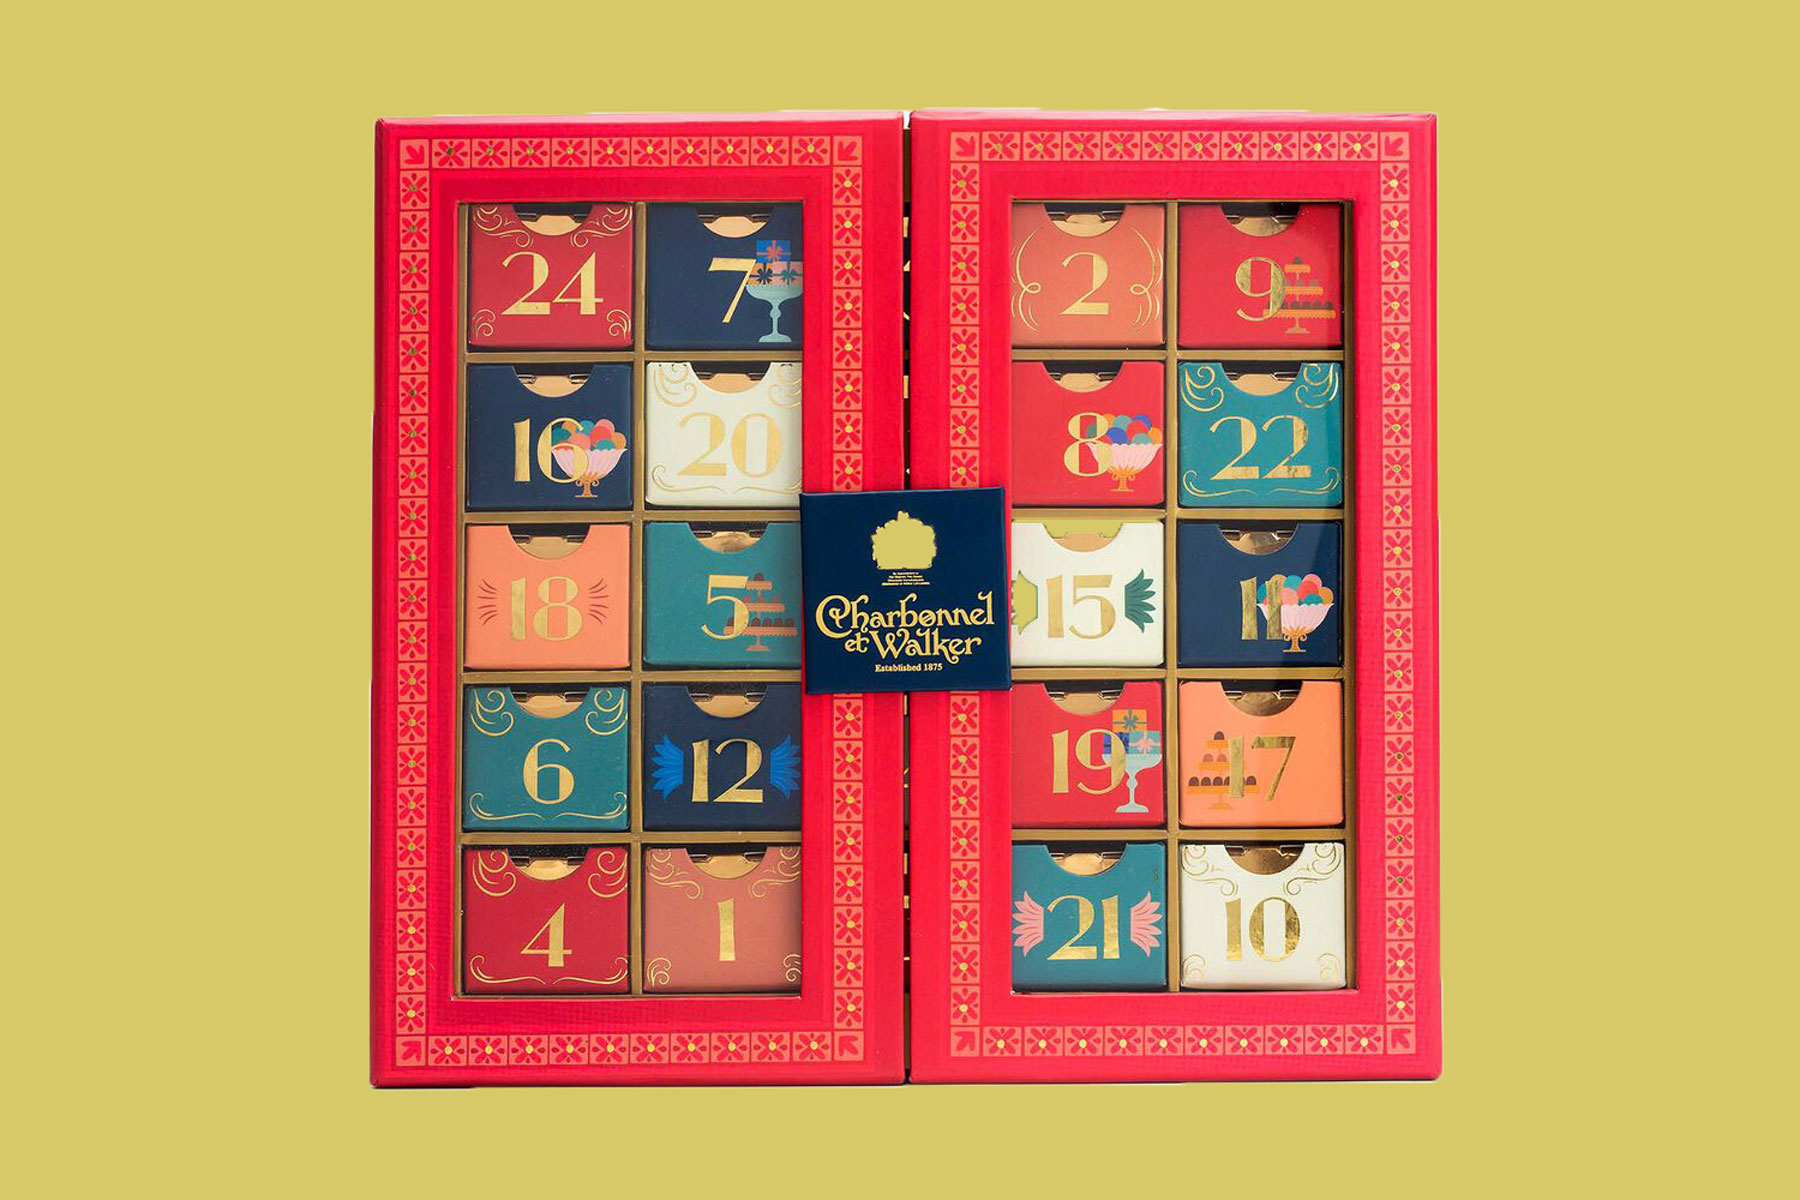 Charbonnel et Walker Christmas 2020 Chocolate & Truffle Advent Calendar